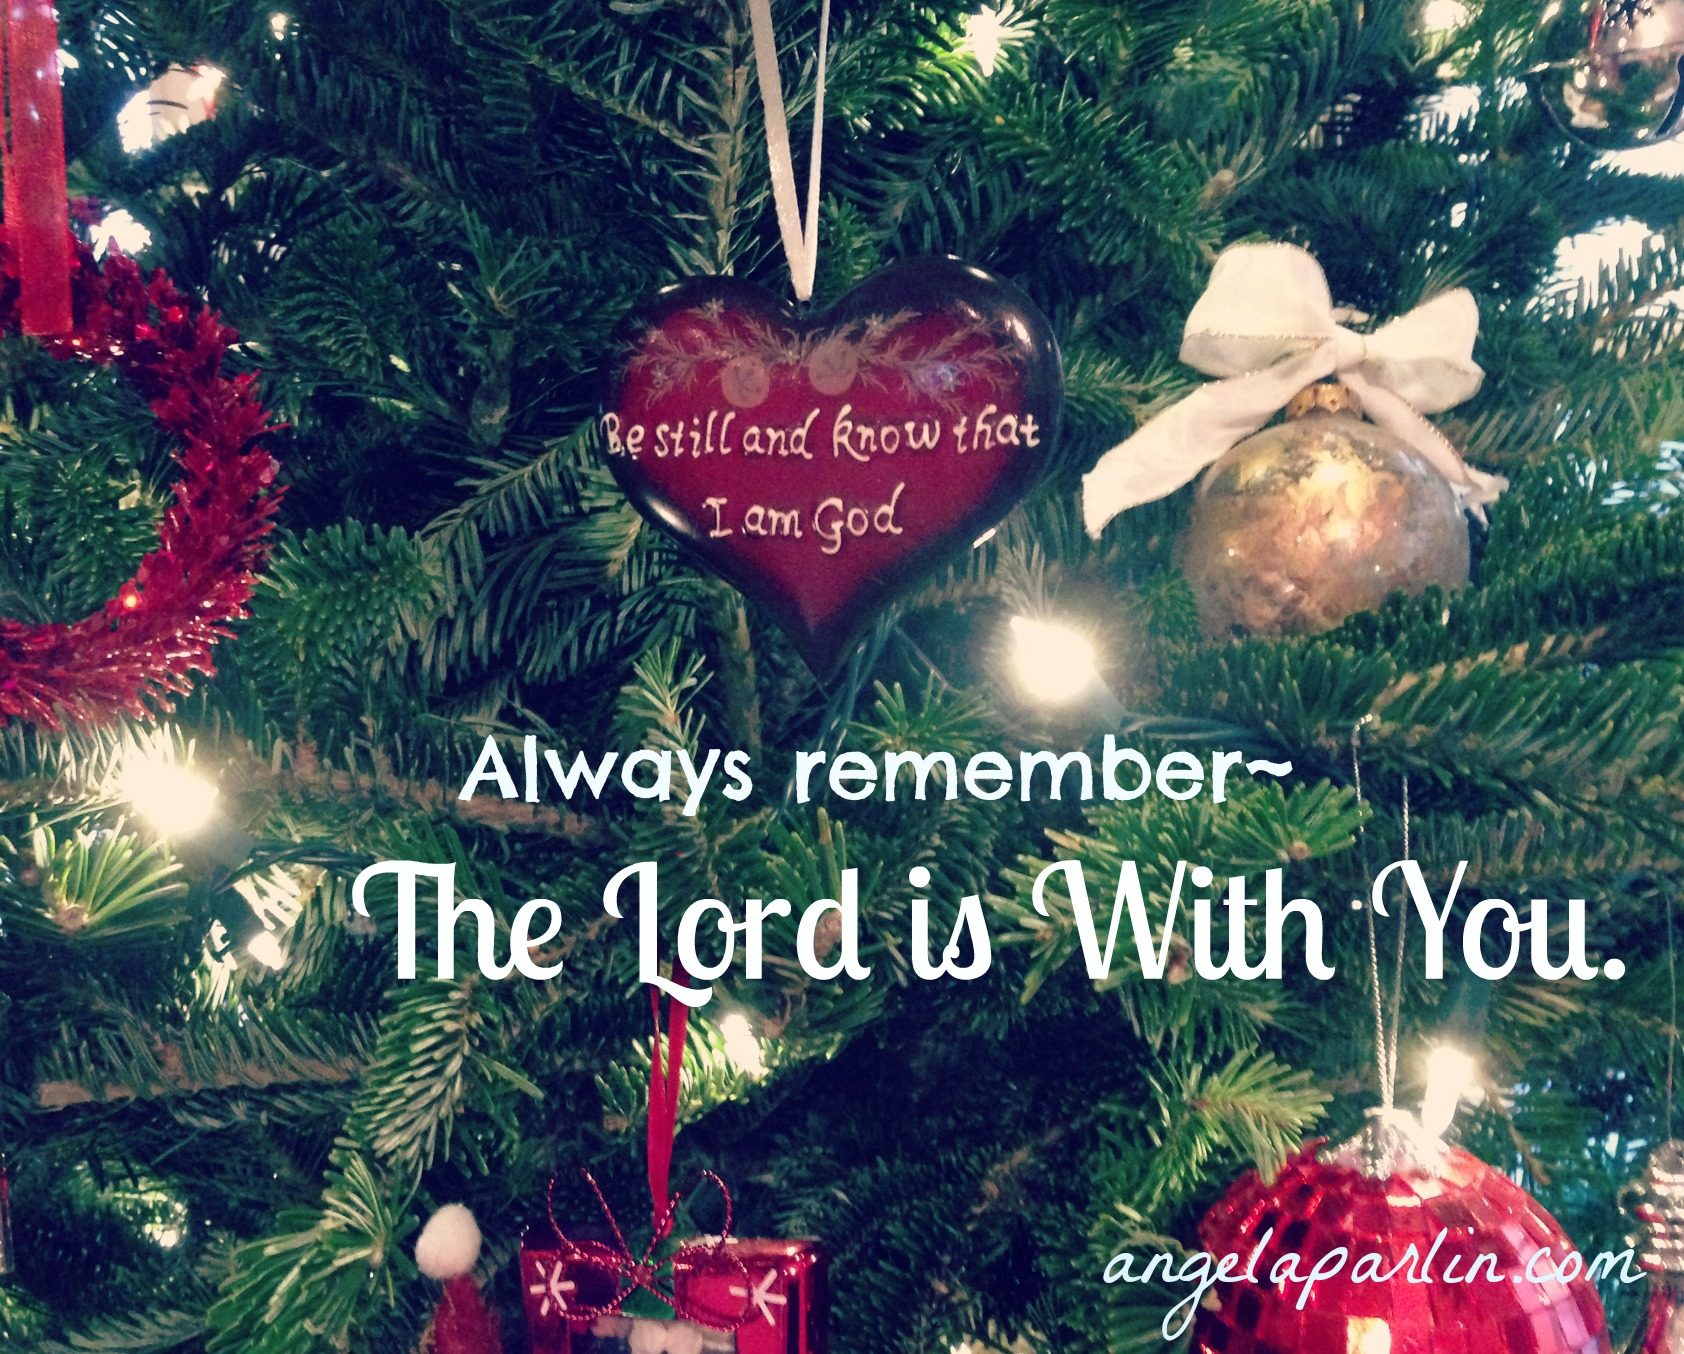 Lord With You